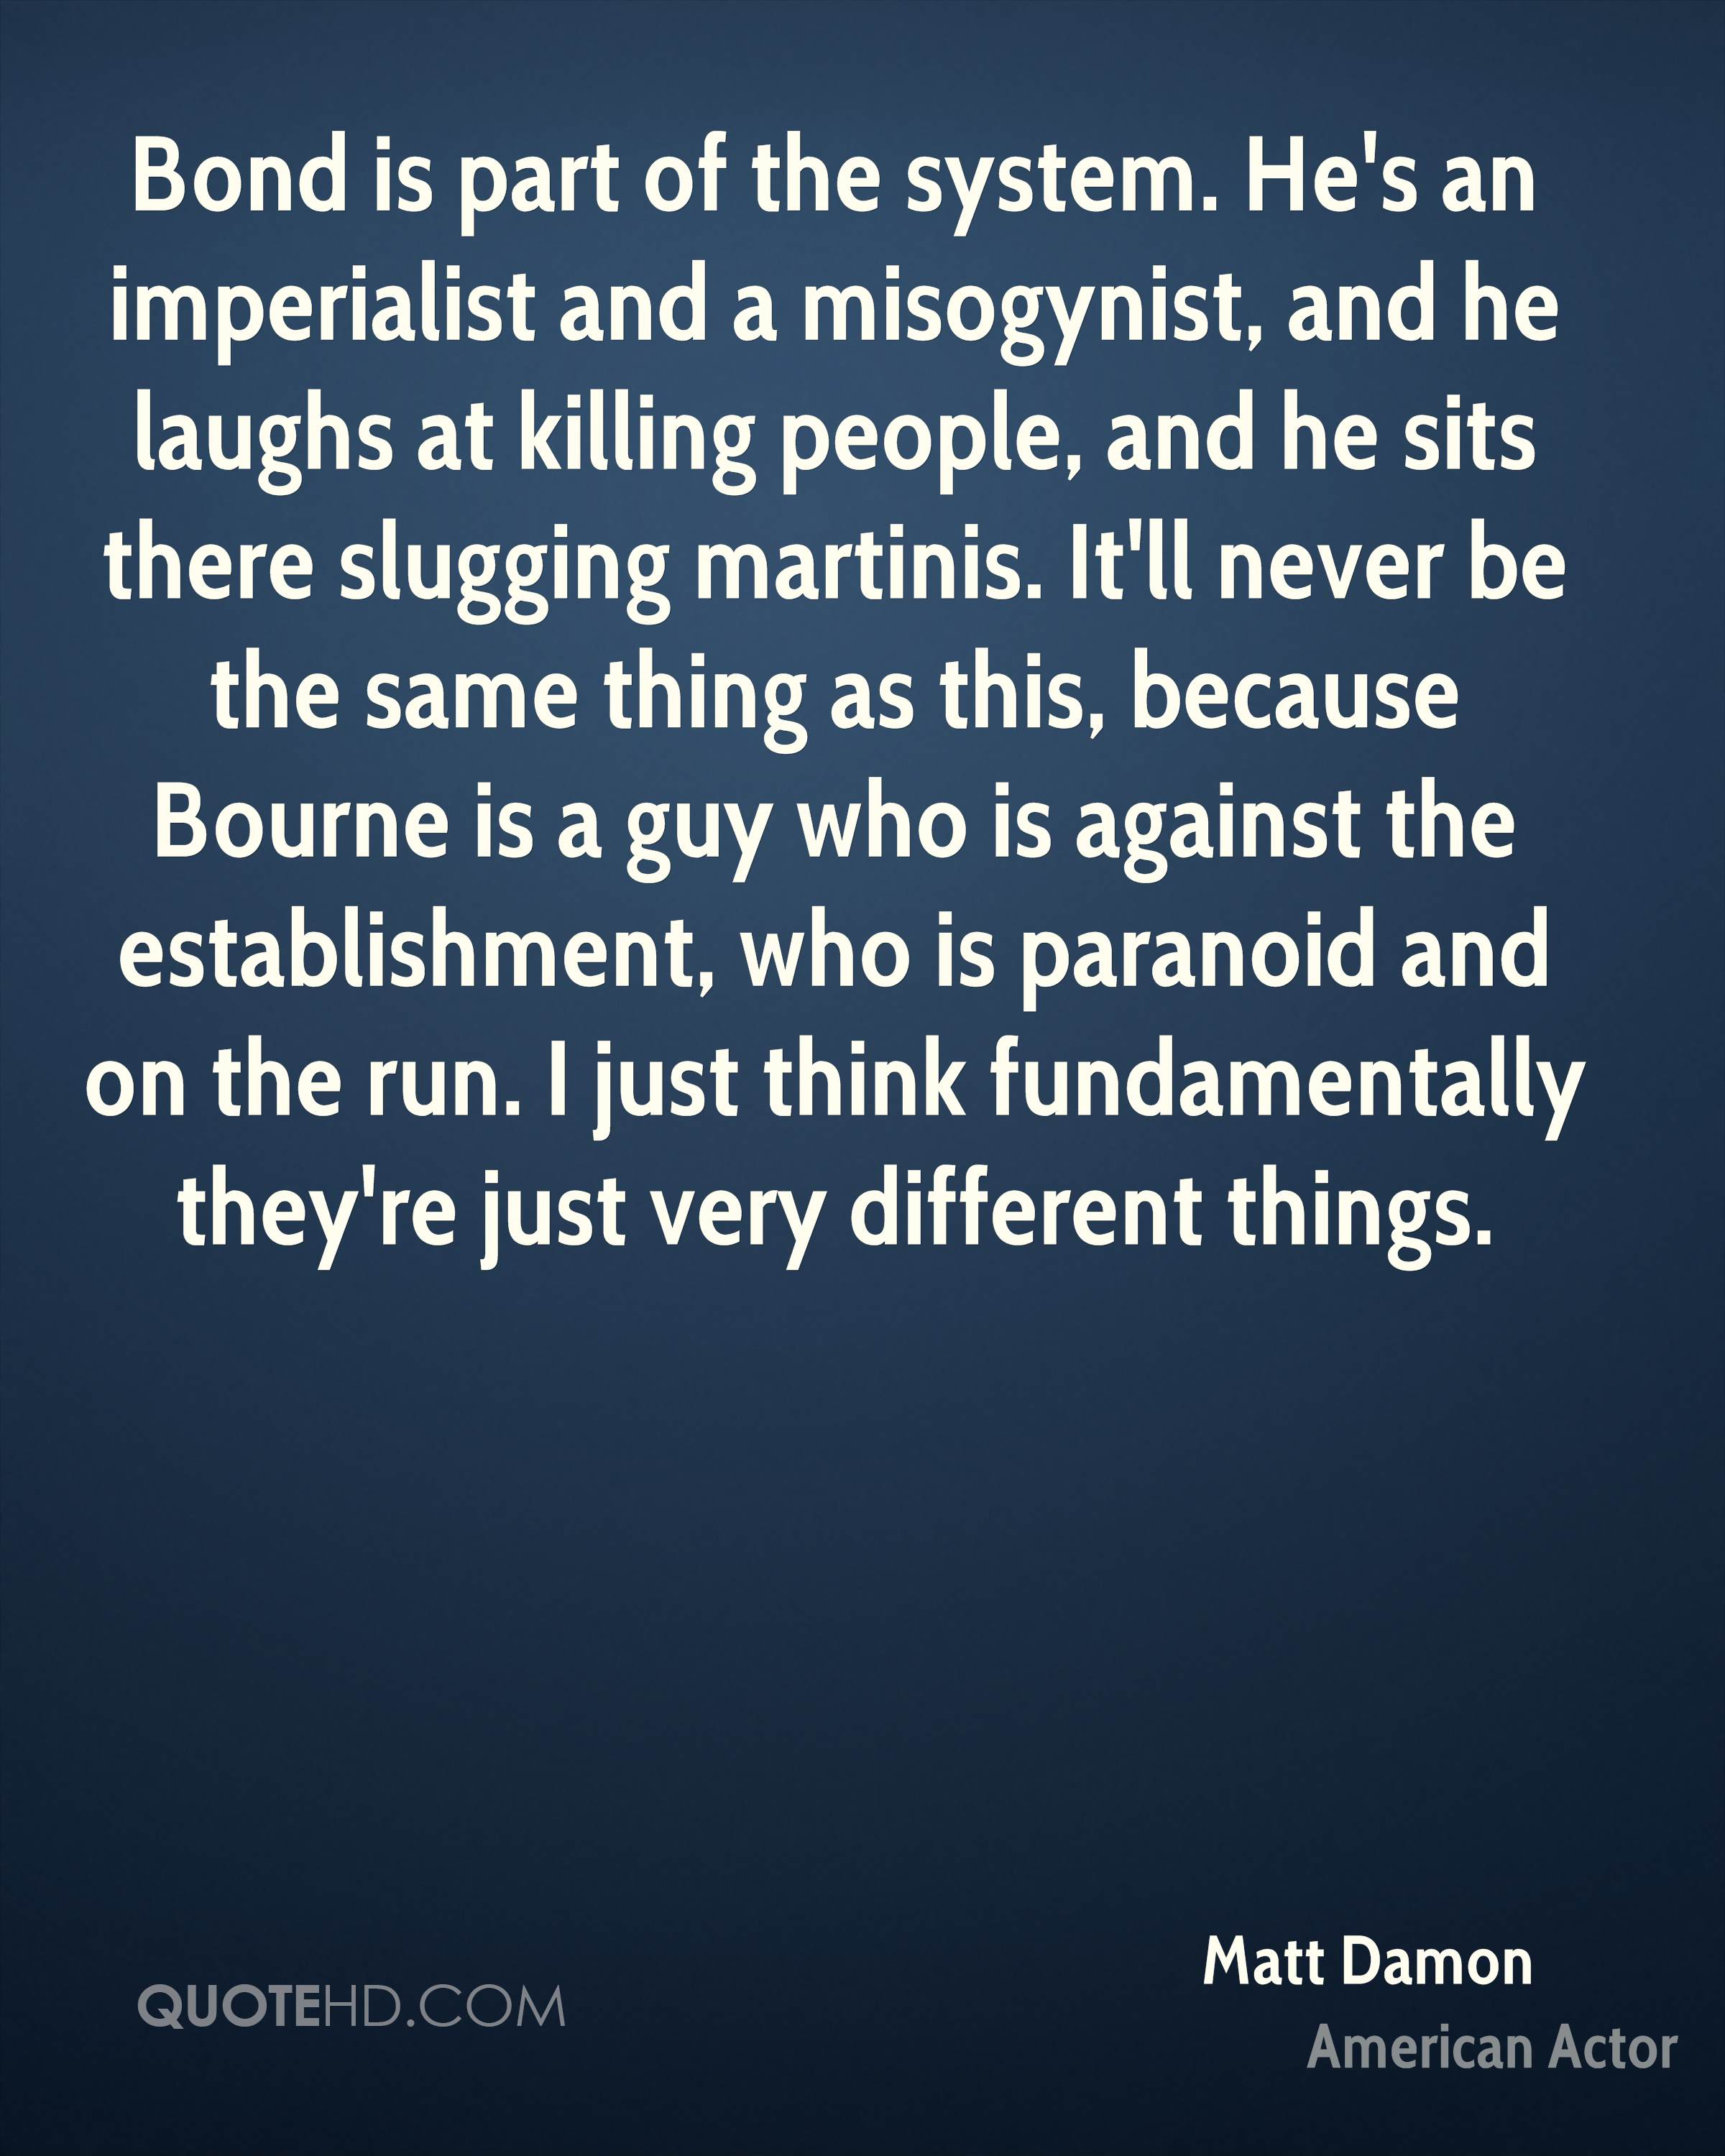 Bond is part of the system. He's an imperialist and a misogynist, and he laughs at killing people, and he sits there slugging martinis. It'll never be the same thing as this, because Bourne is a guy who is against the establishment, who is paranoid and on the run. I just think fundamentally they're just very different things.